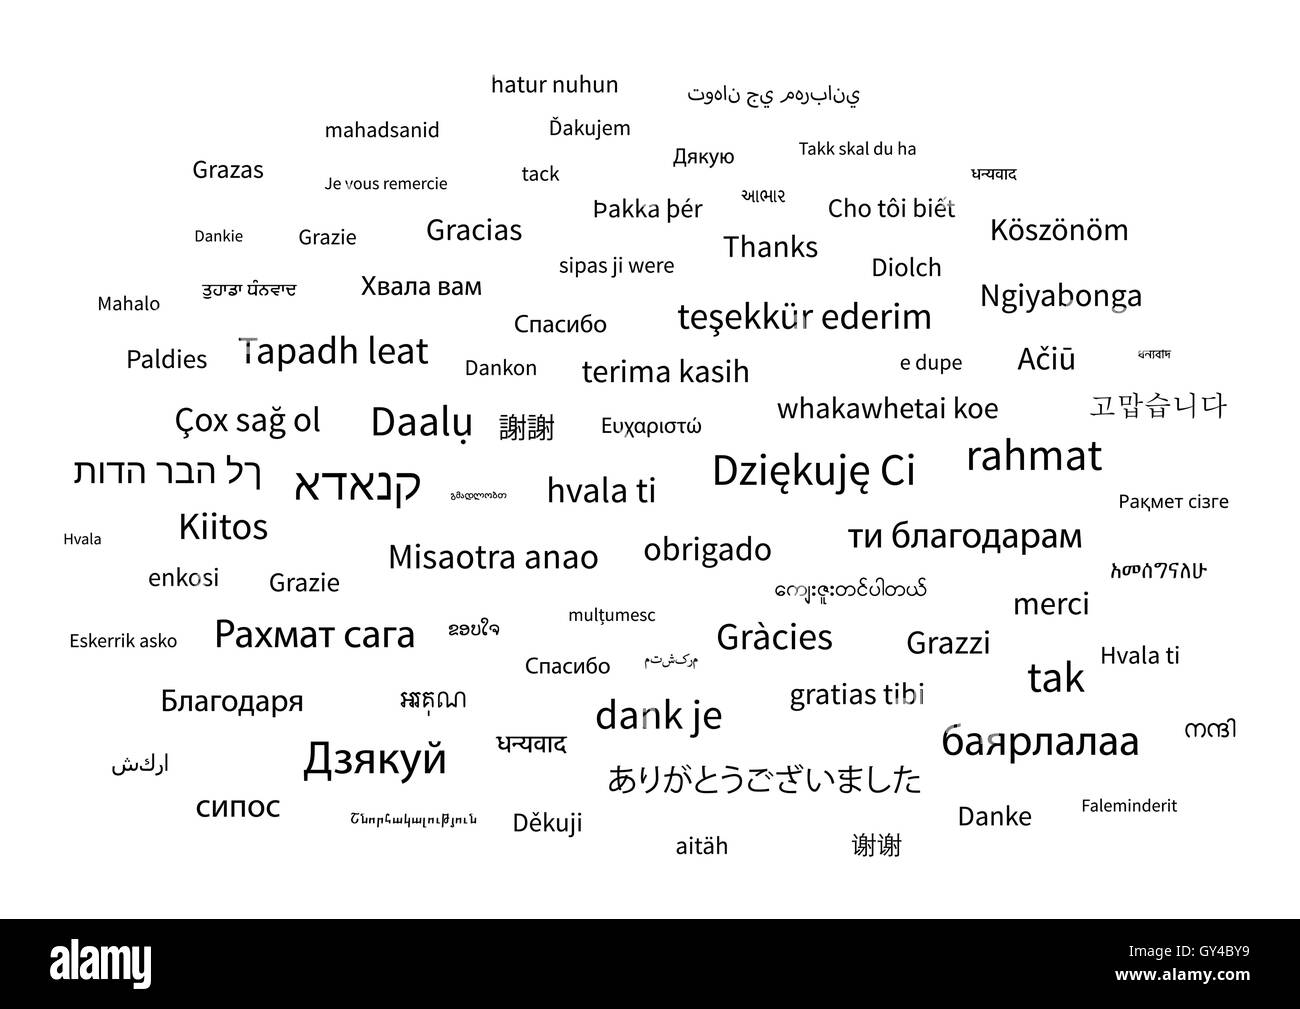 Thanks Phrase In Different Languages Of The World On White - How many types of languages are there in the world